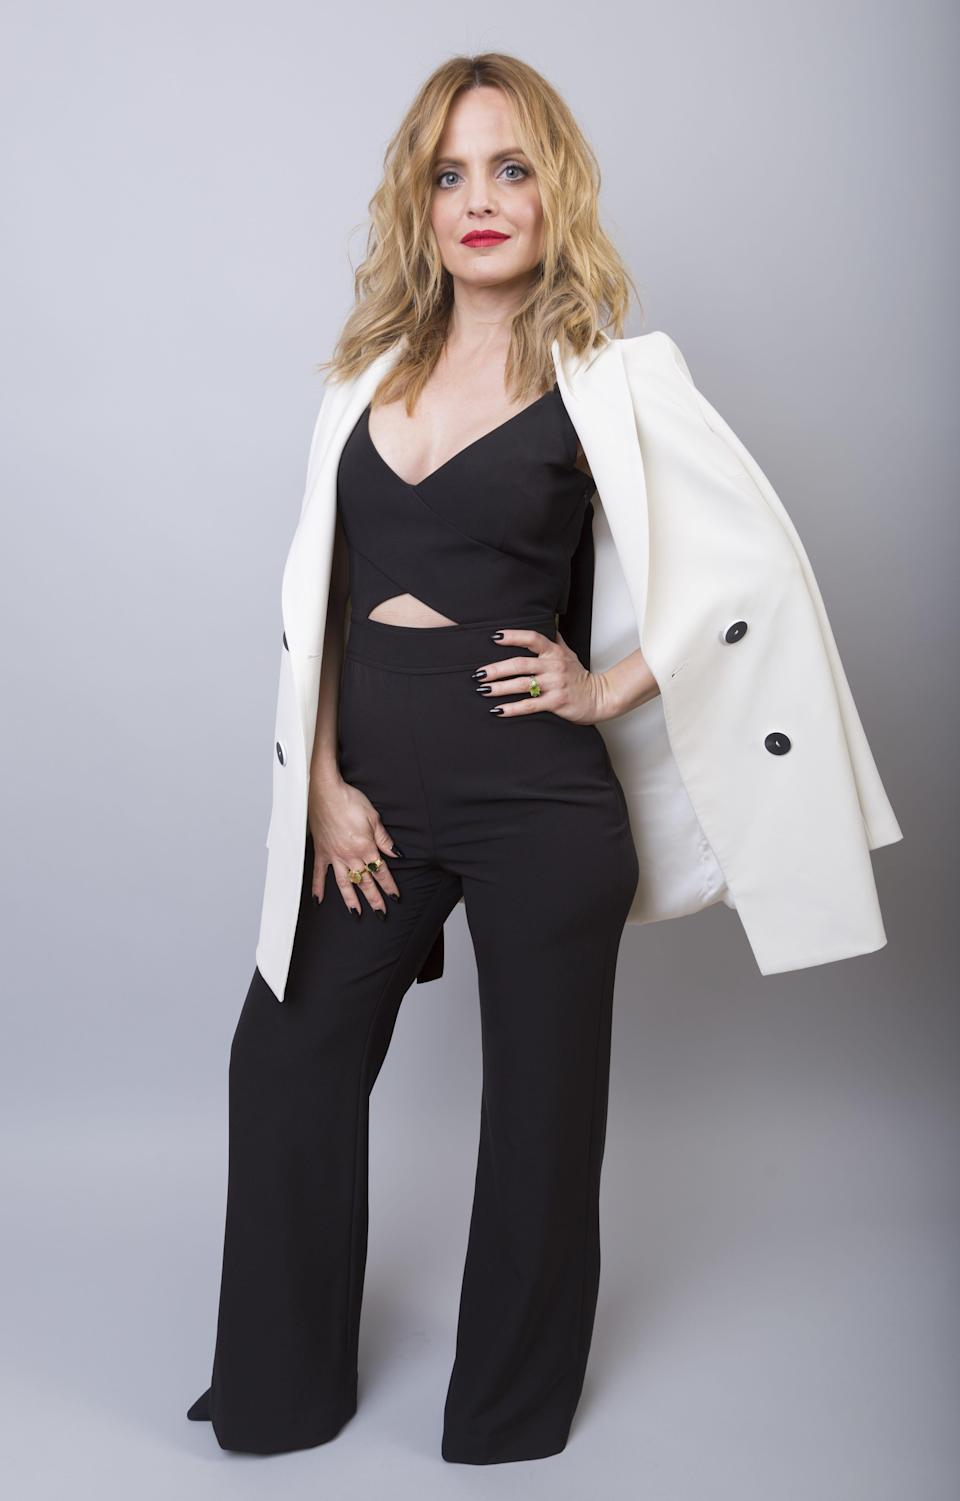 """Mena Suvari, a castmember in the Paramount Network series """"American Woman,"""" poses for a portrait during the 2018 Television Critics Association Winter Press Tour at the Langham Hotel on Monday, Jan. 15, 2018, in Pasadena, Calif."""